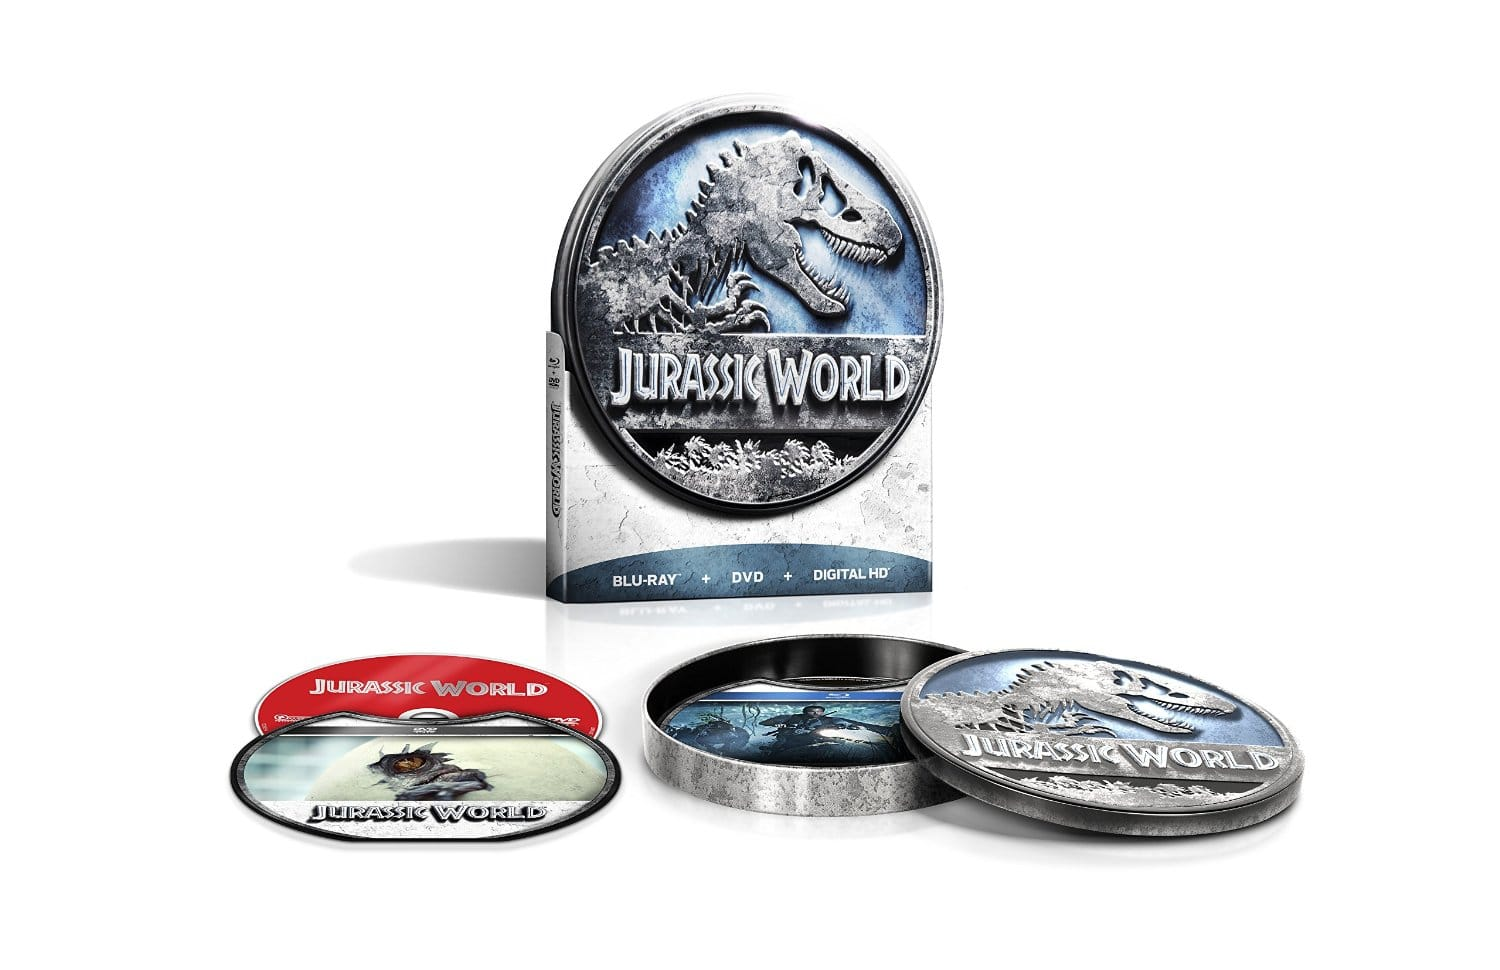 Jurassic World (Limited Edition) [Blu-ray, DVD, Digital] from Amazon $9.99